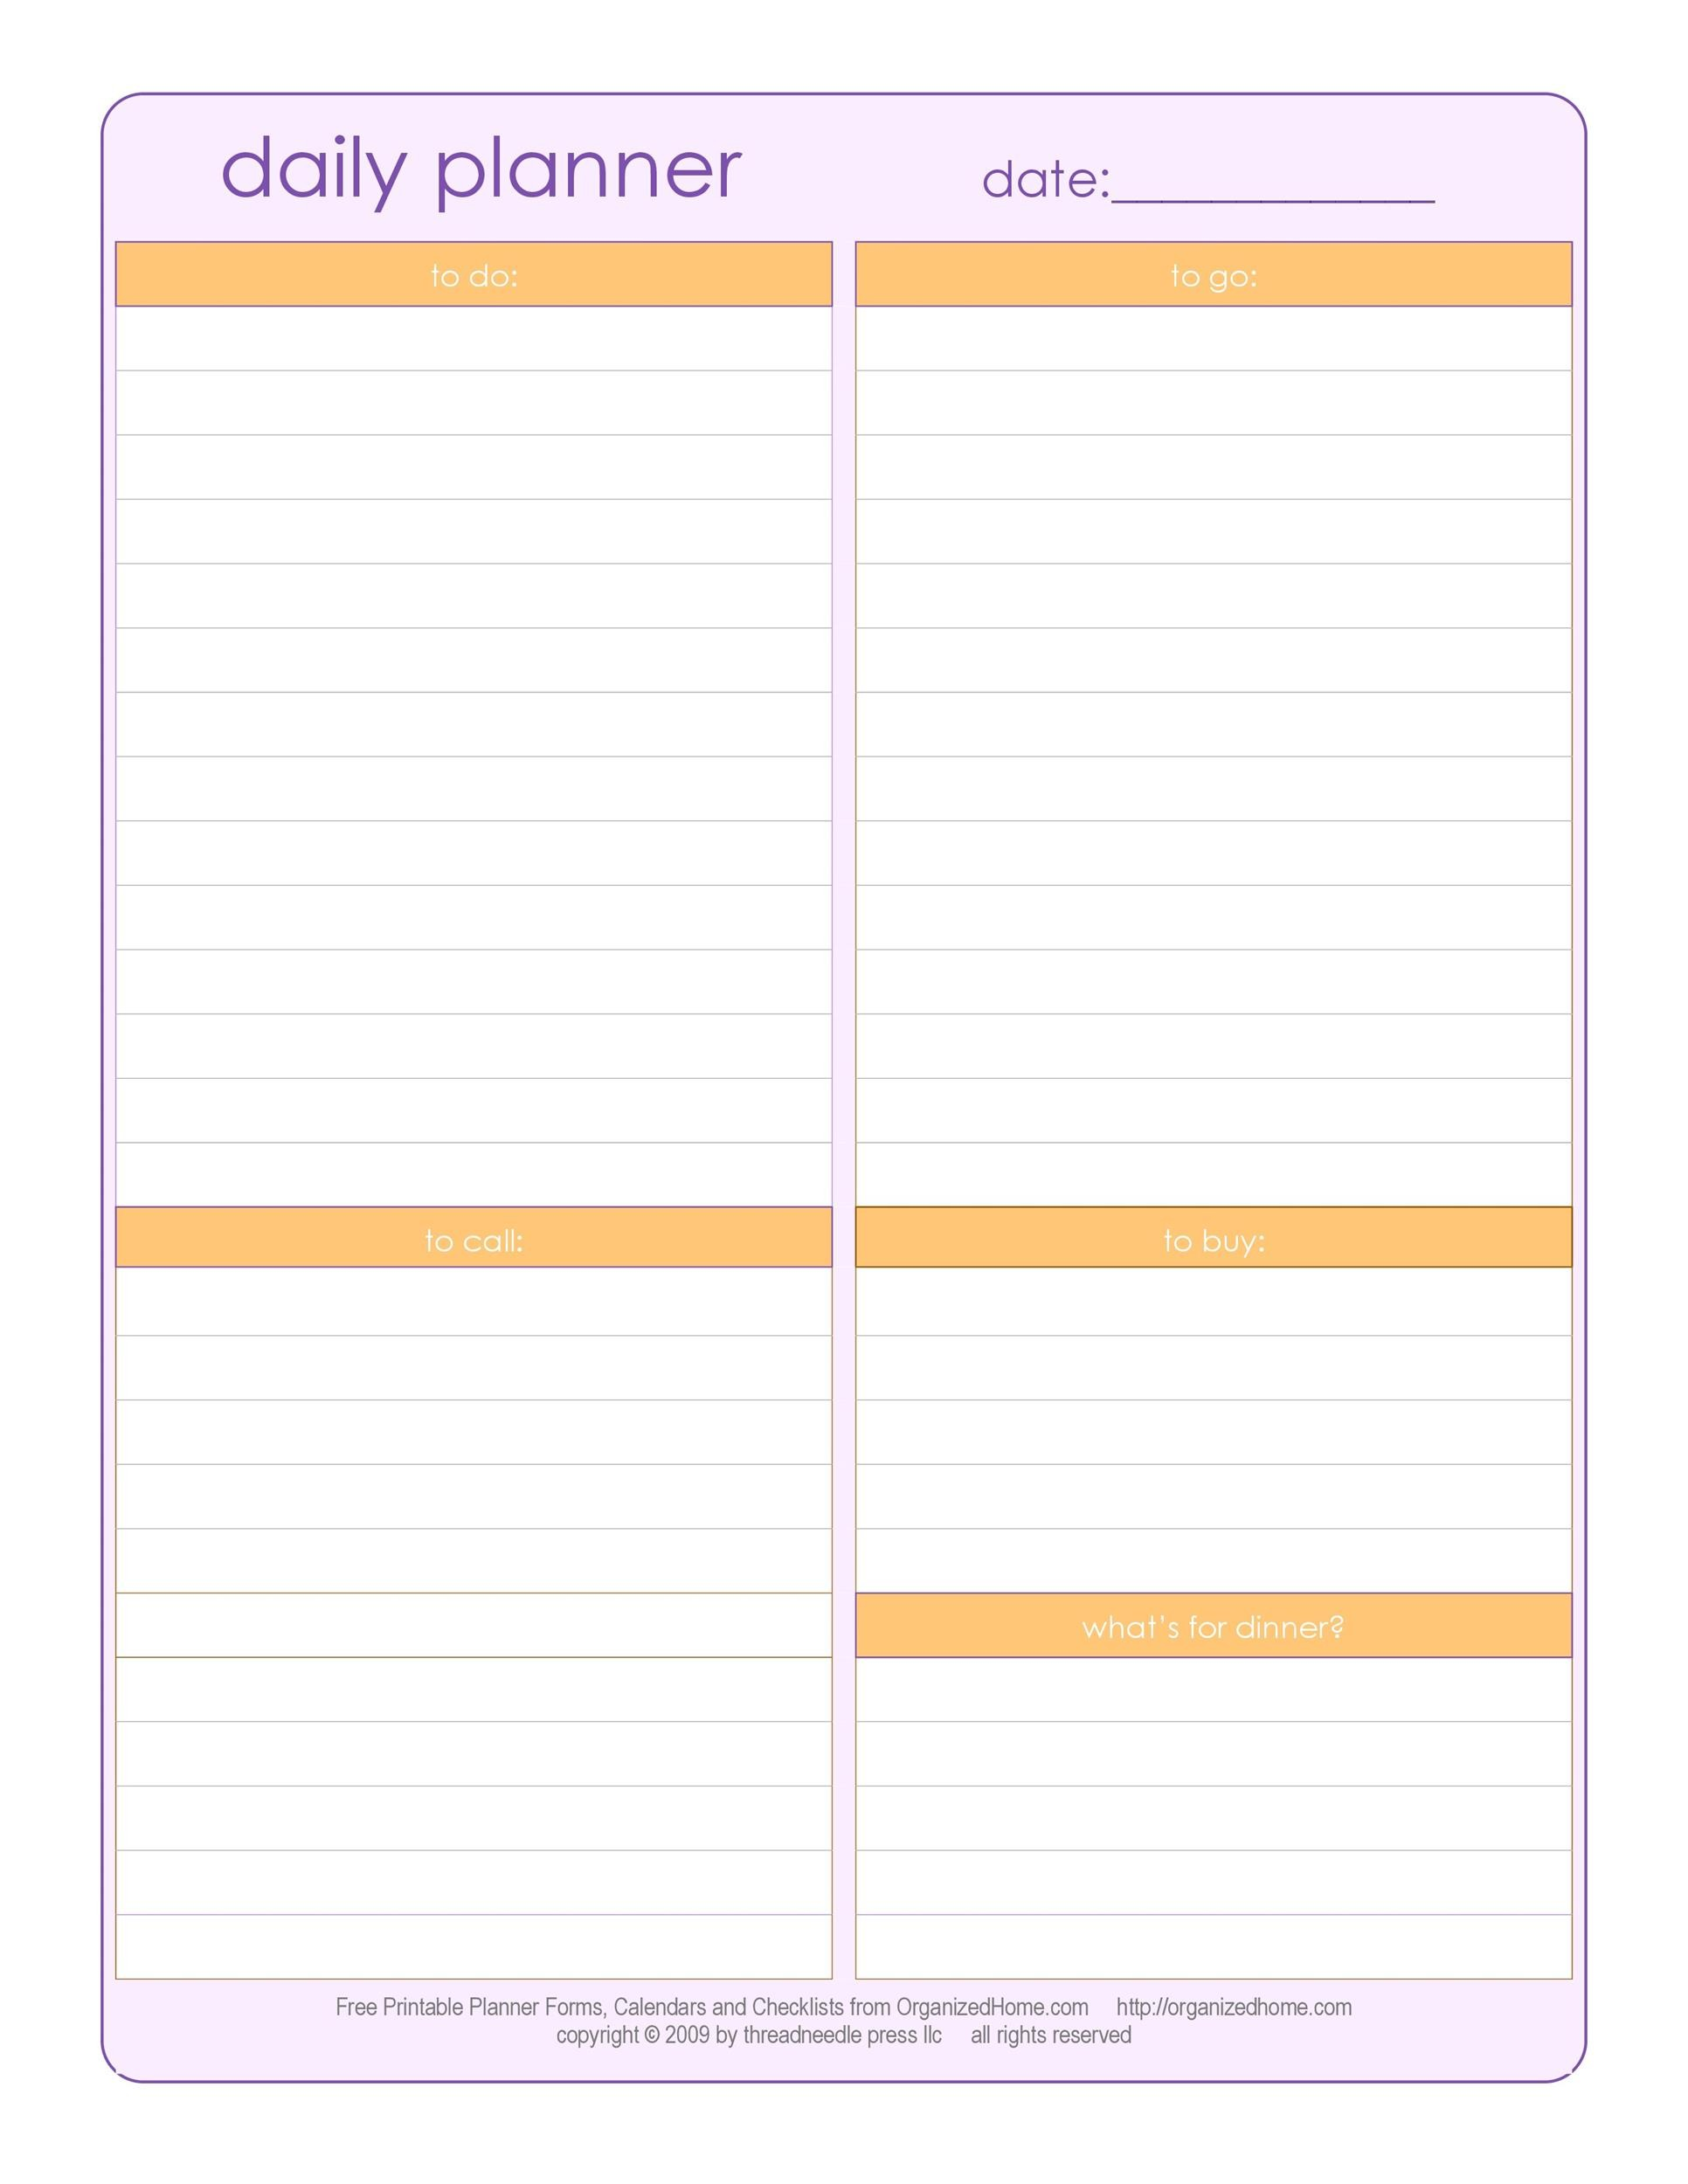 High Quality Printable Daily Planner Templates